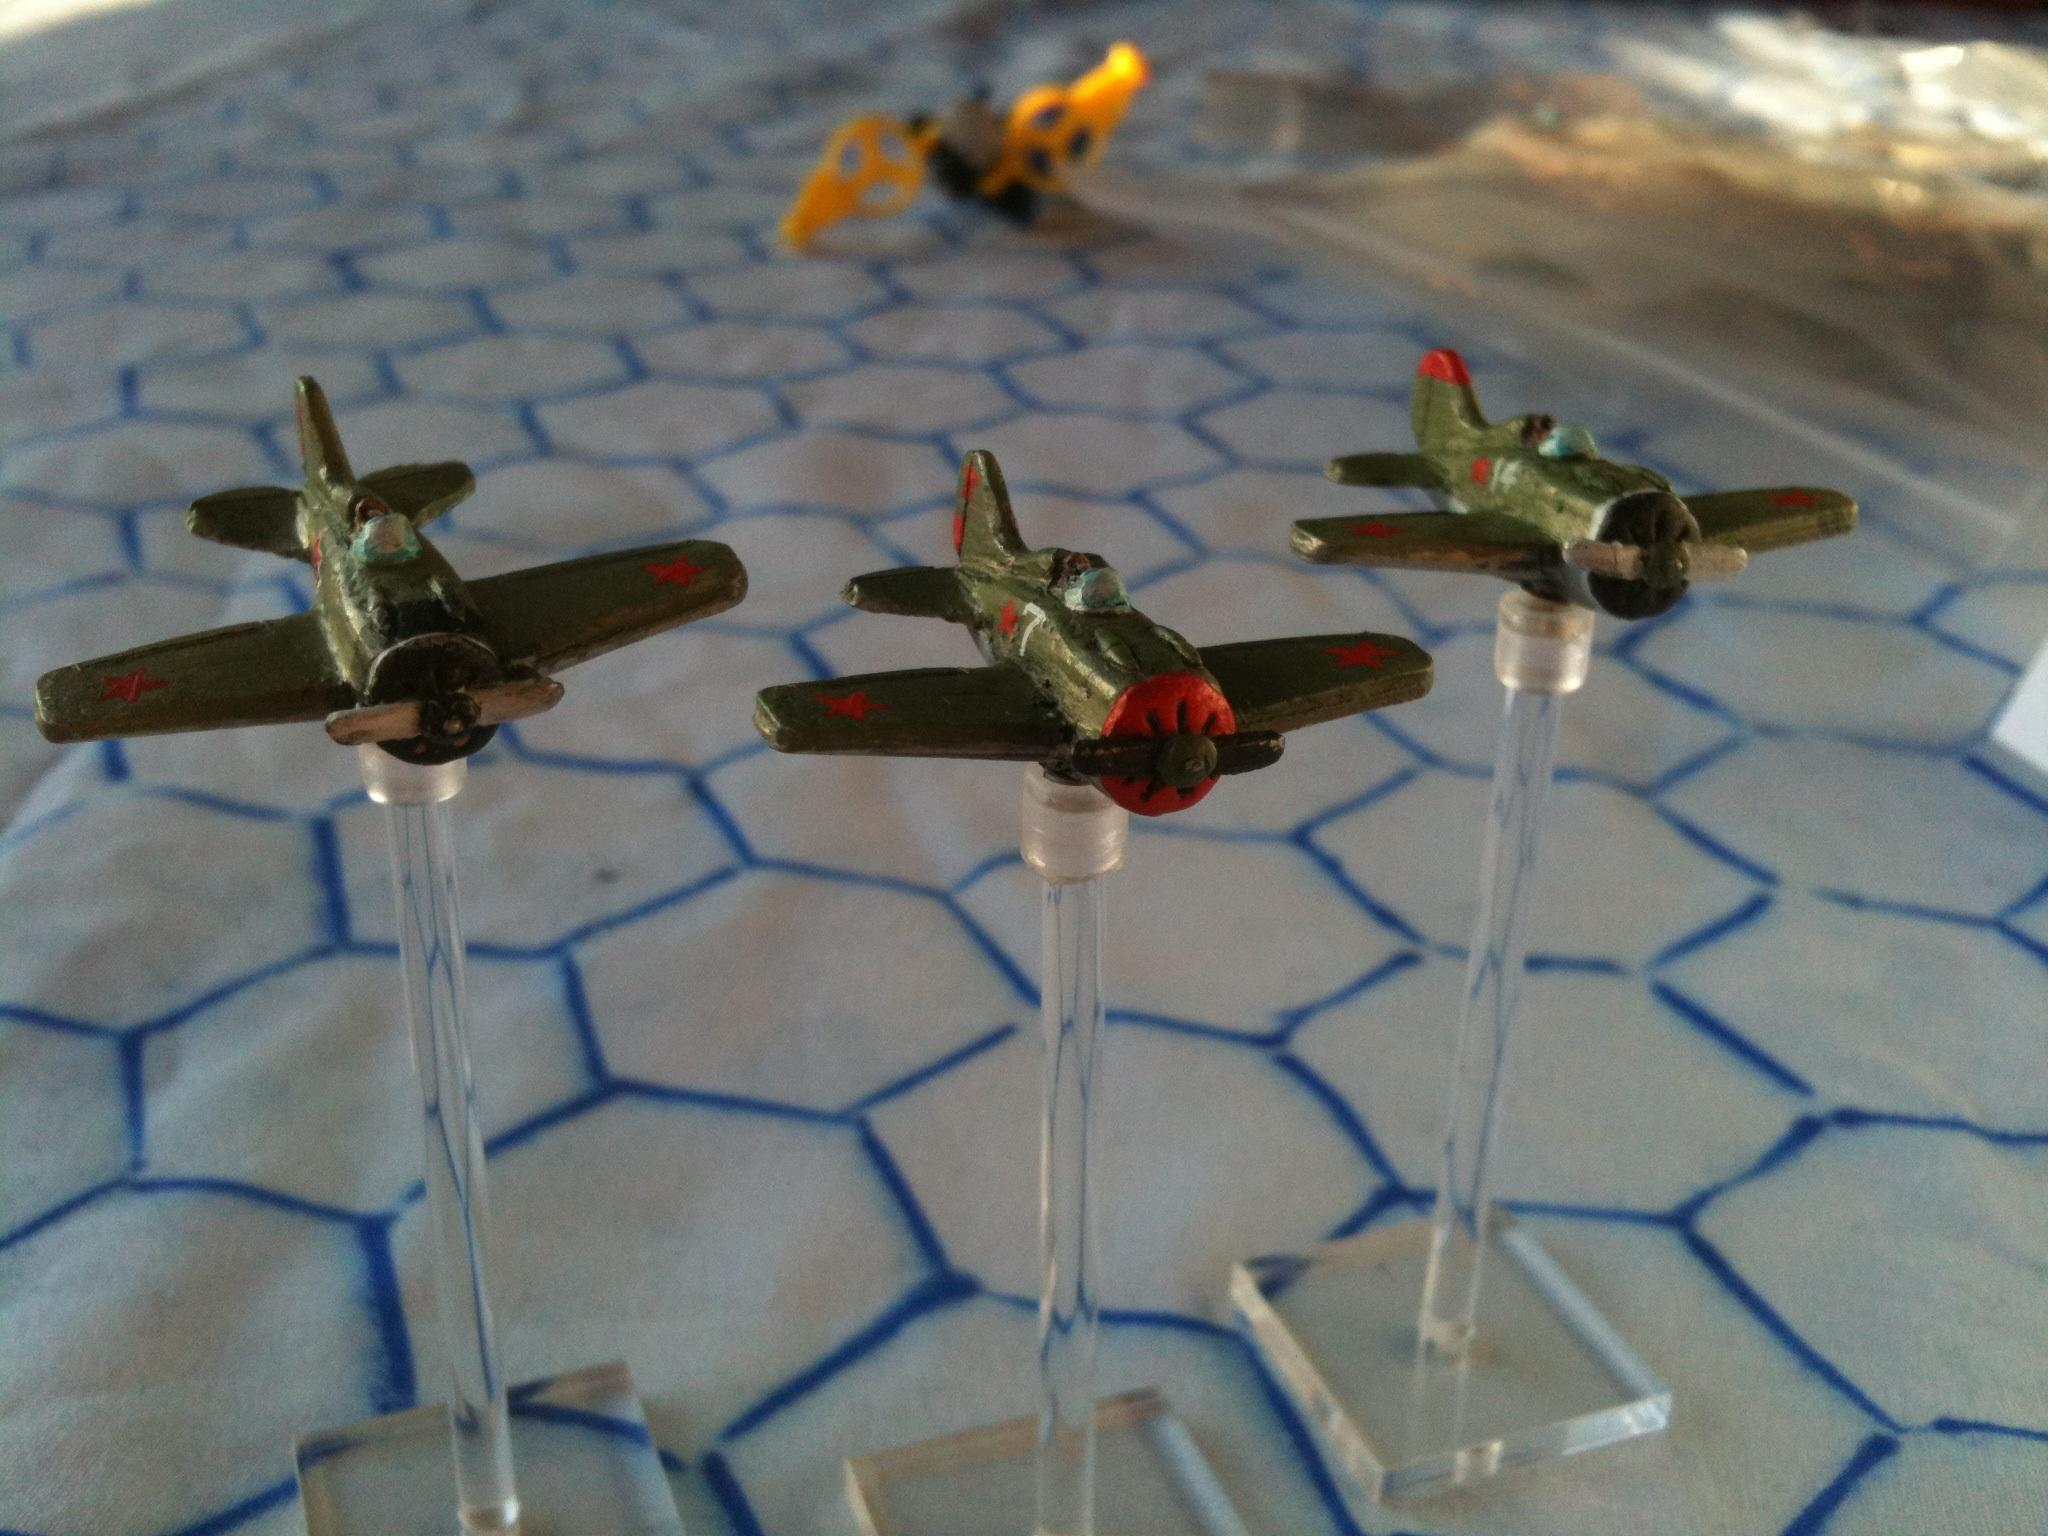 1:300, 1:300 Scale, 6mm, 6mm Scale, Air Combat, Airborne, Aircraft, Airplane, Aviation, Check Your 6!, Finland, Fliers, I-16, Planes, Republic Of China, Russians, Soviet, World War 2